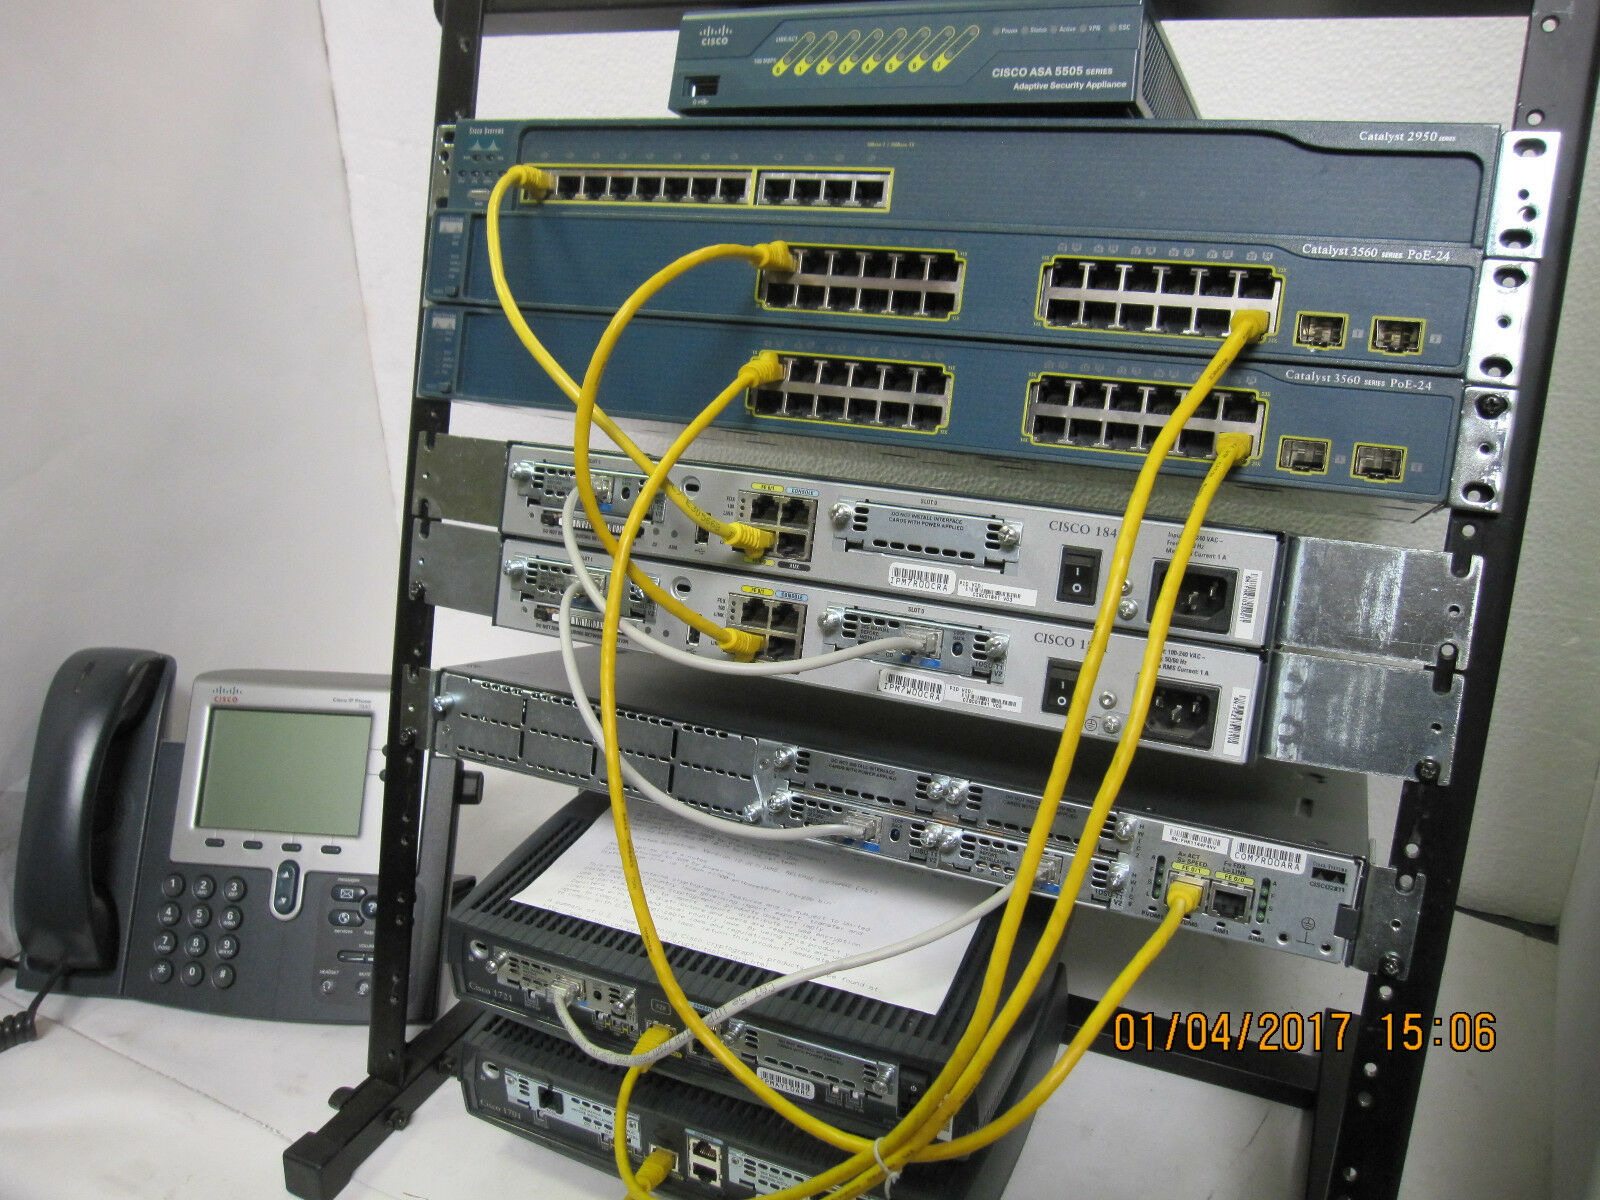 1 Ebay Seller 200 125 Cisco Ccna Ccnp Security Lab Kit Asa5505 Layer How To Configure Intervlan Routing On 3 Switches